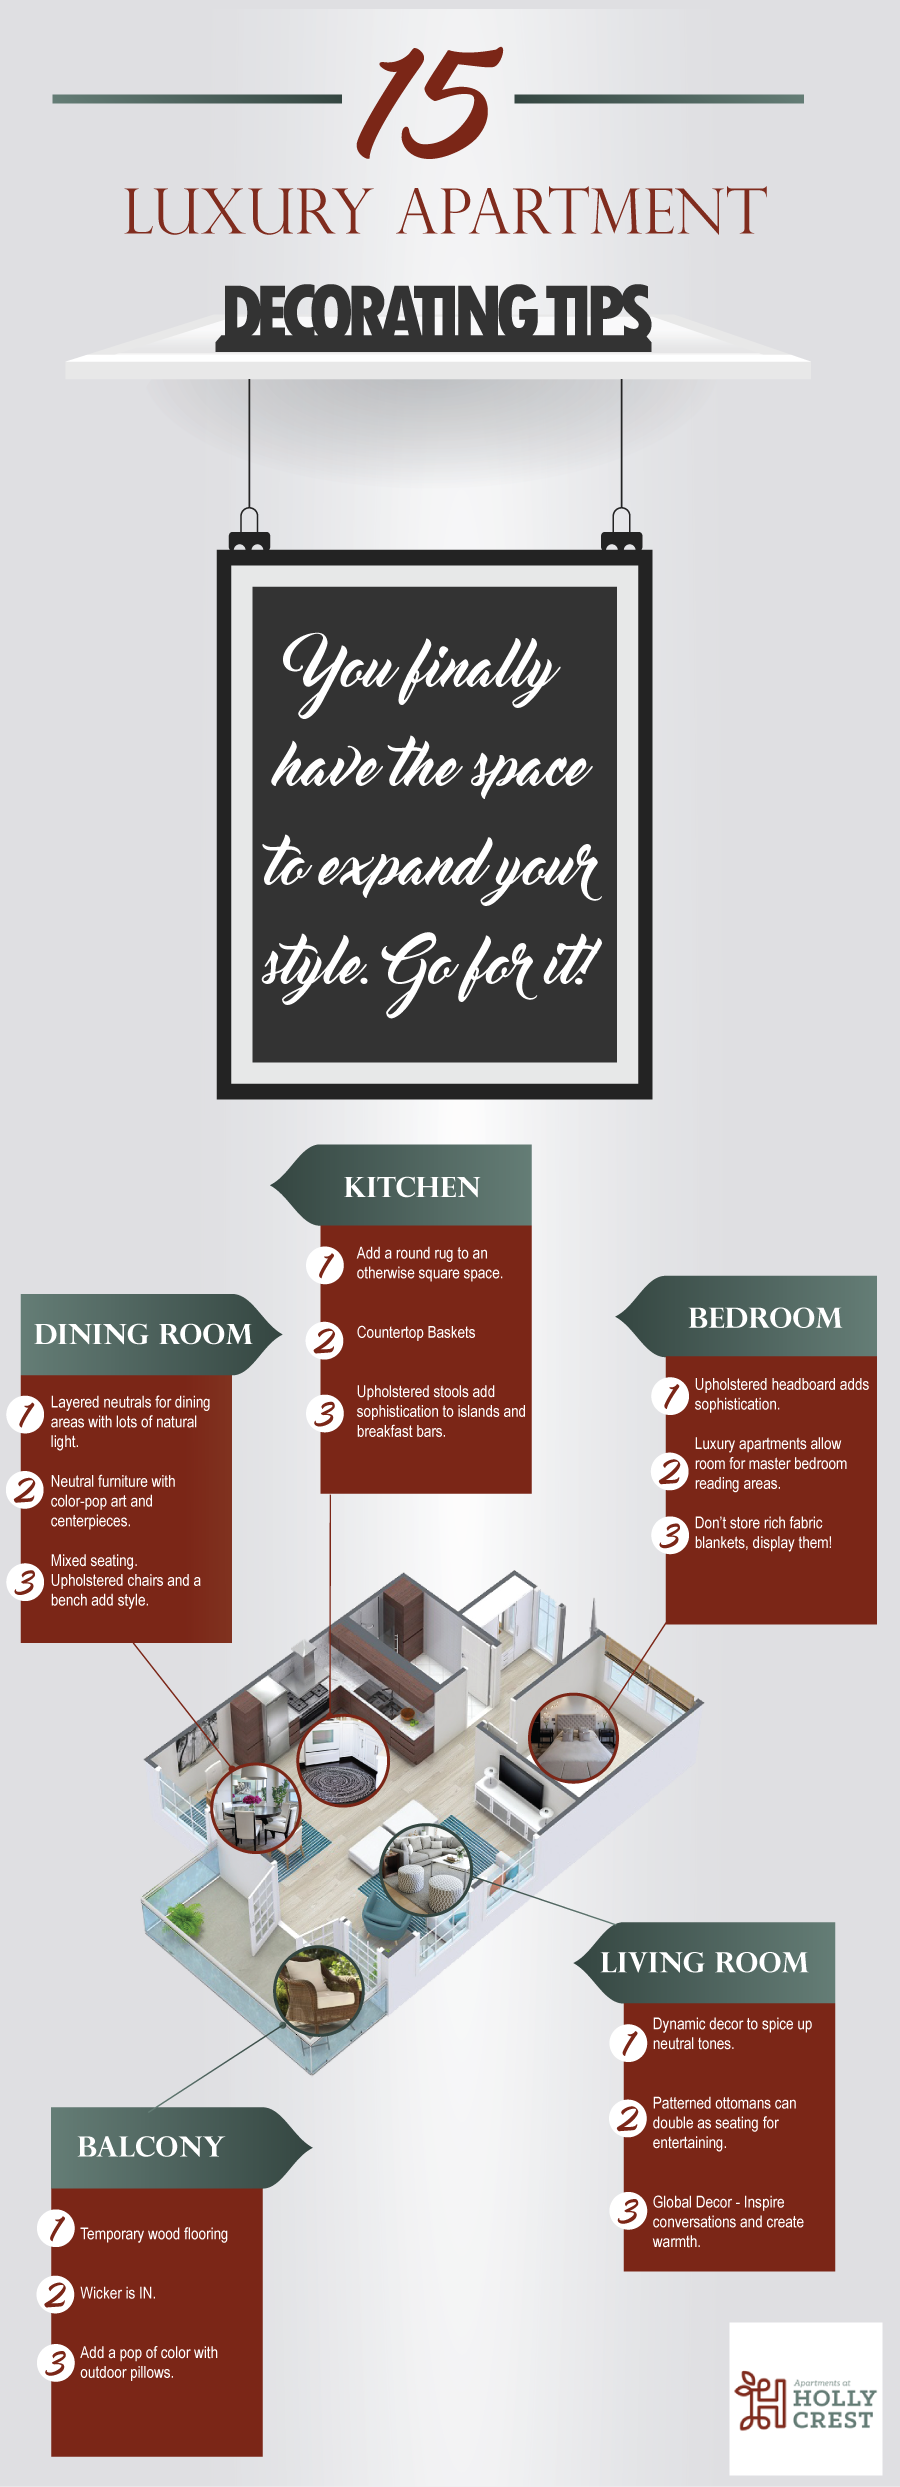 Luxury Apartment Decorating Tips Infographic